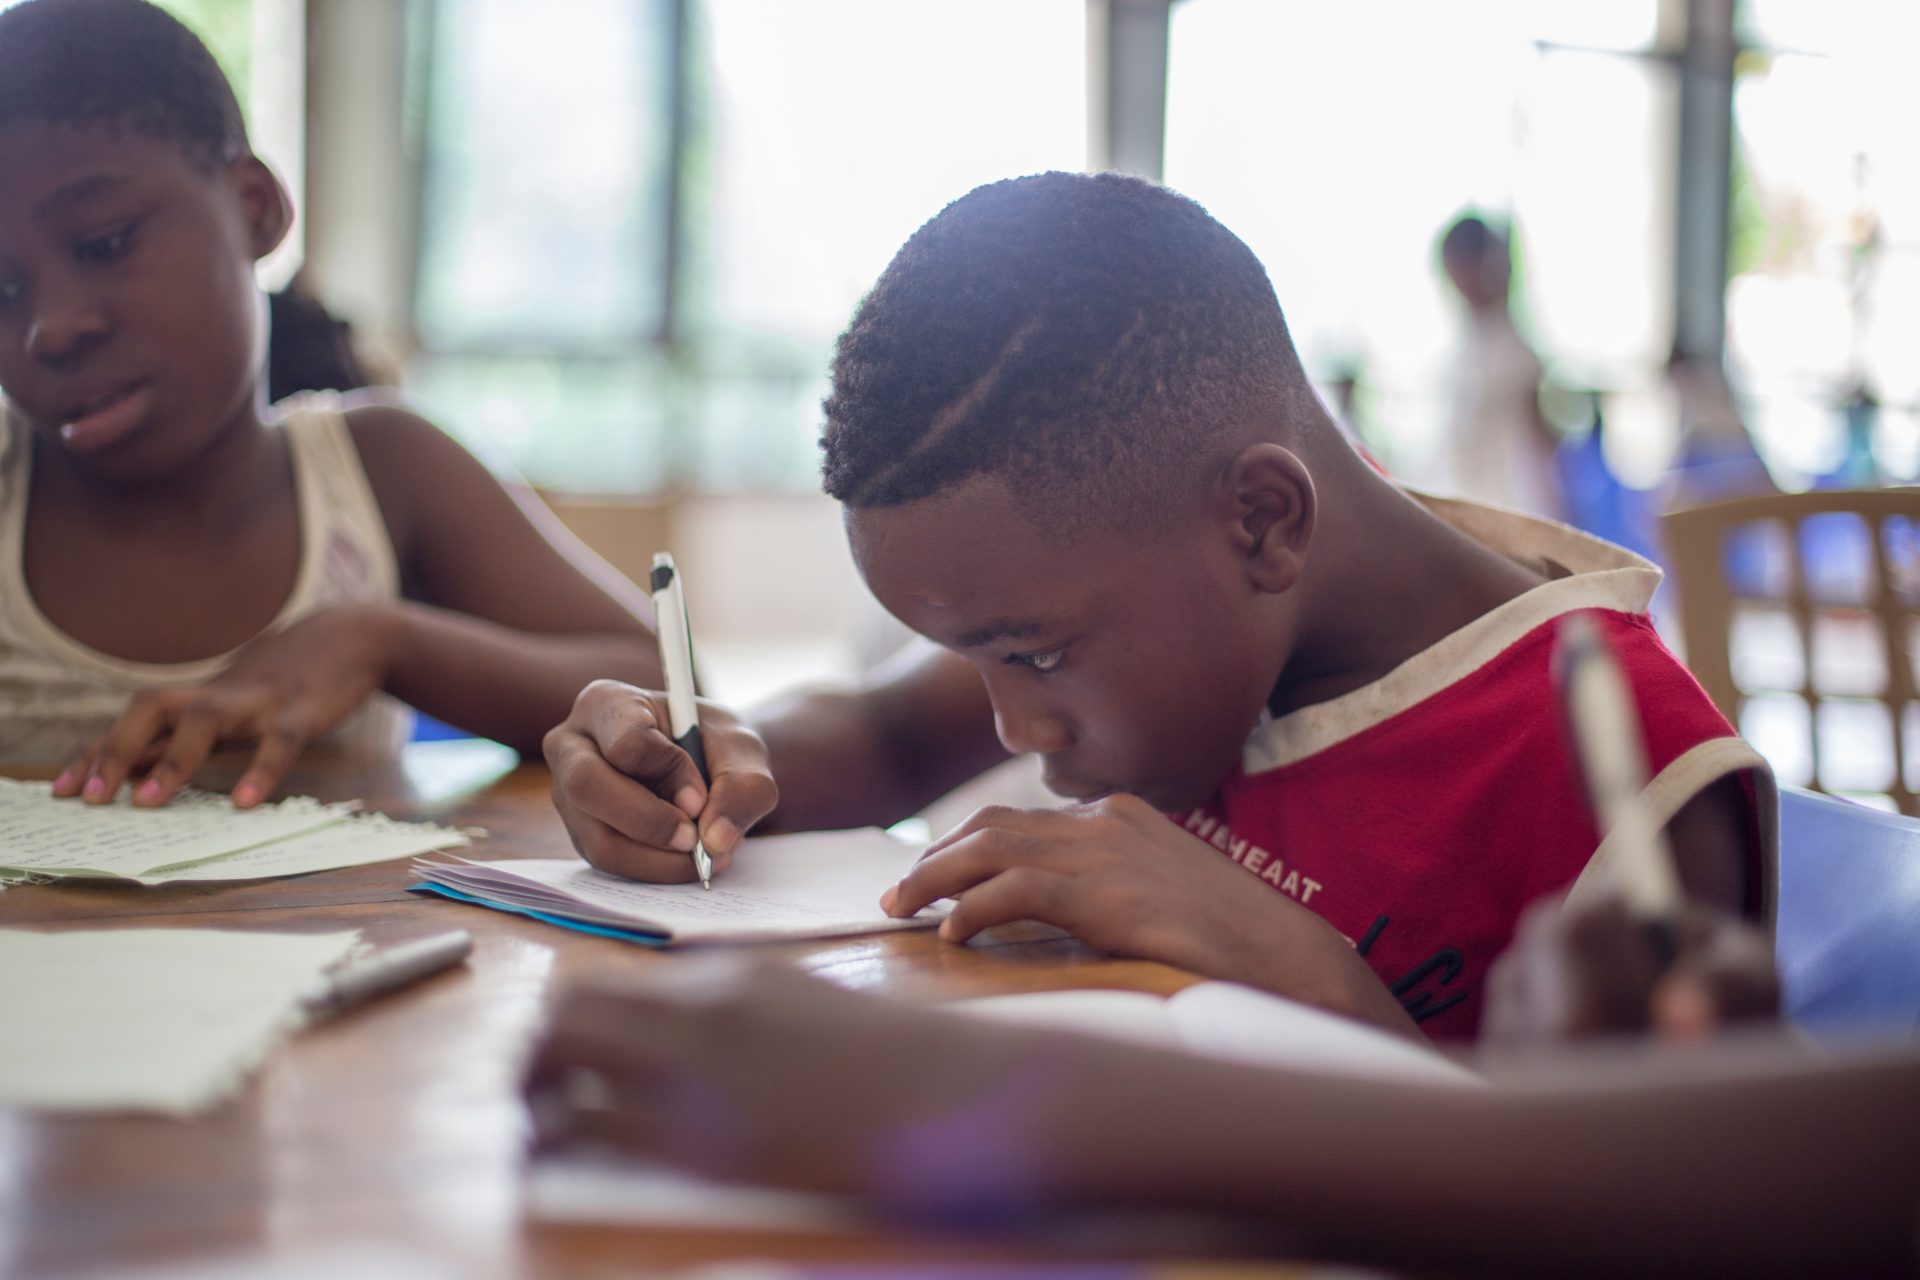 Child engaging with education material